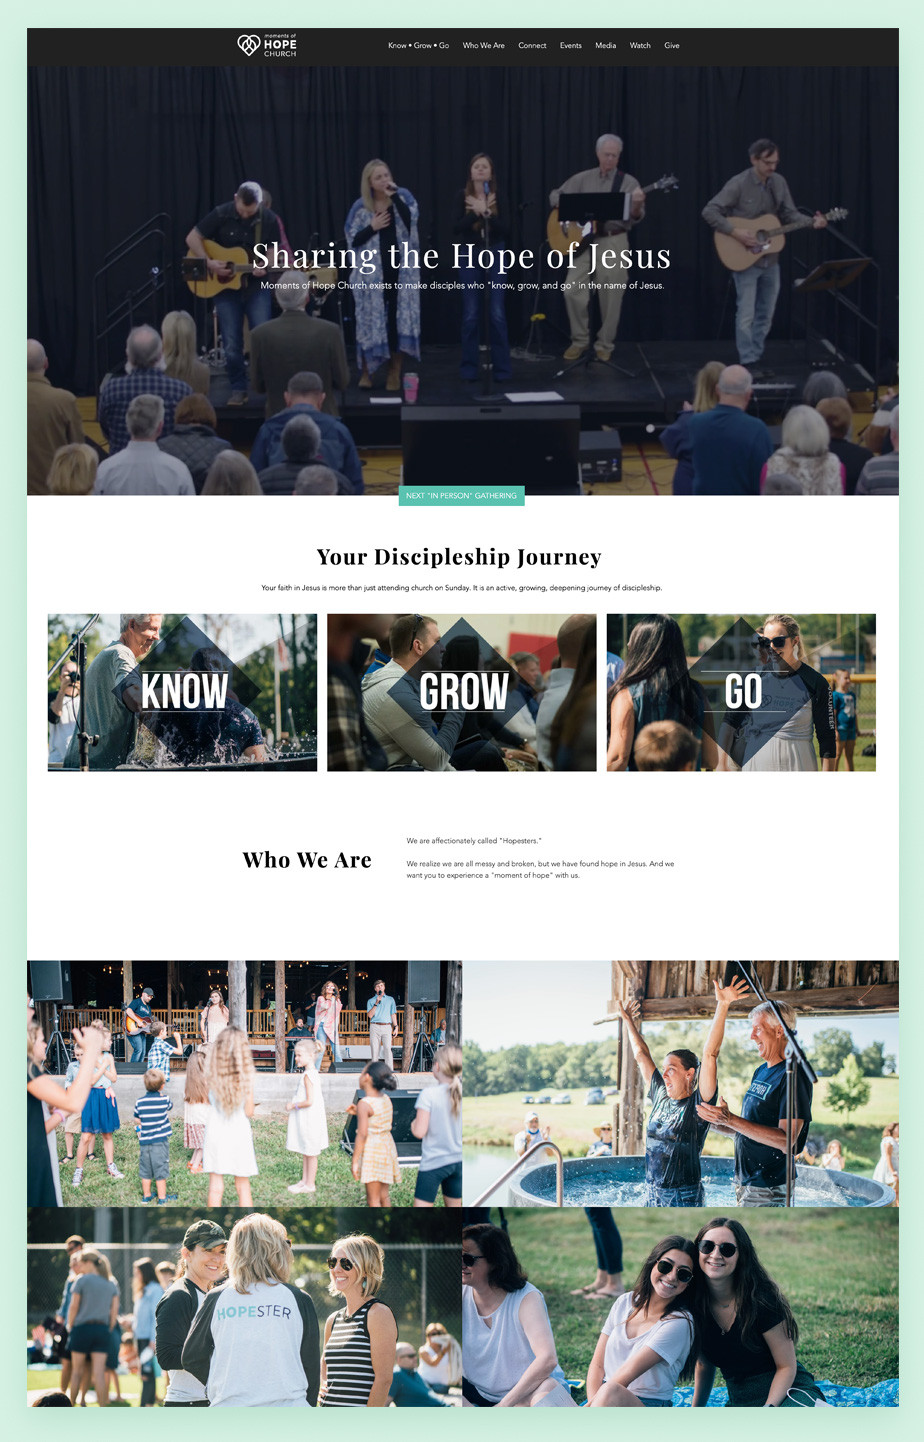 Best church websites example by Moments of Hope Church